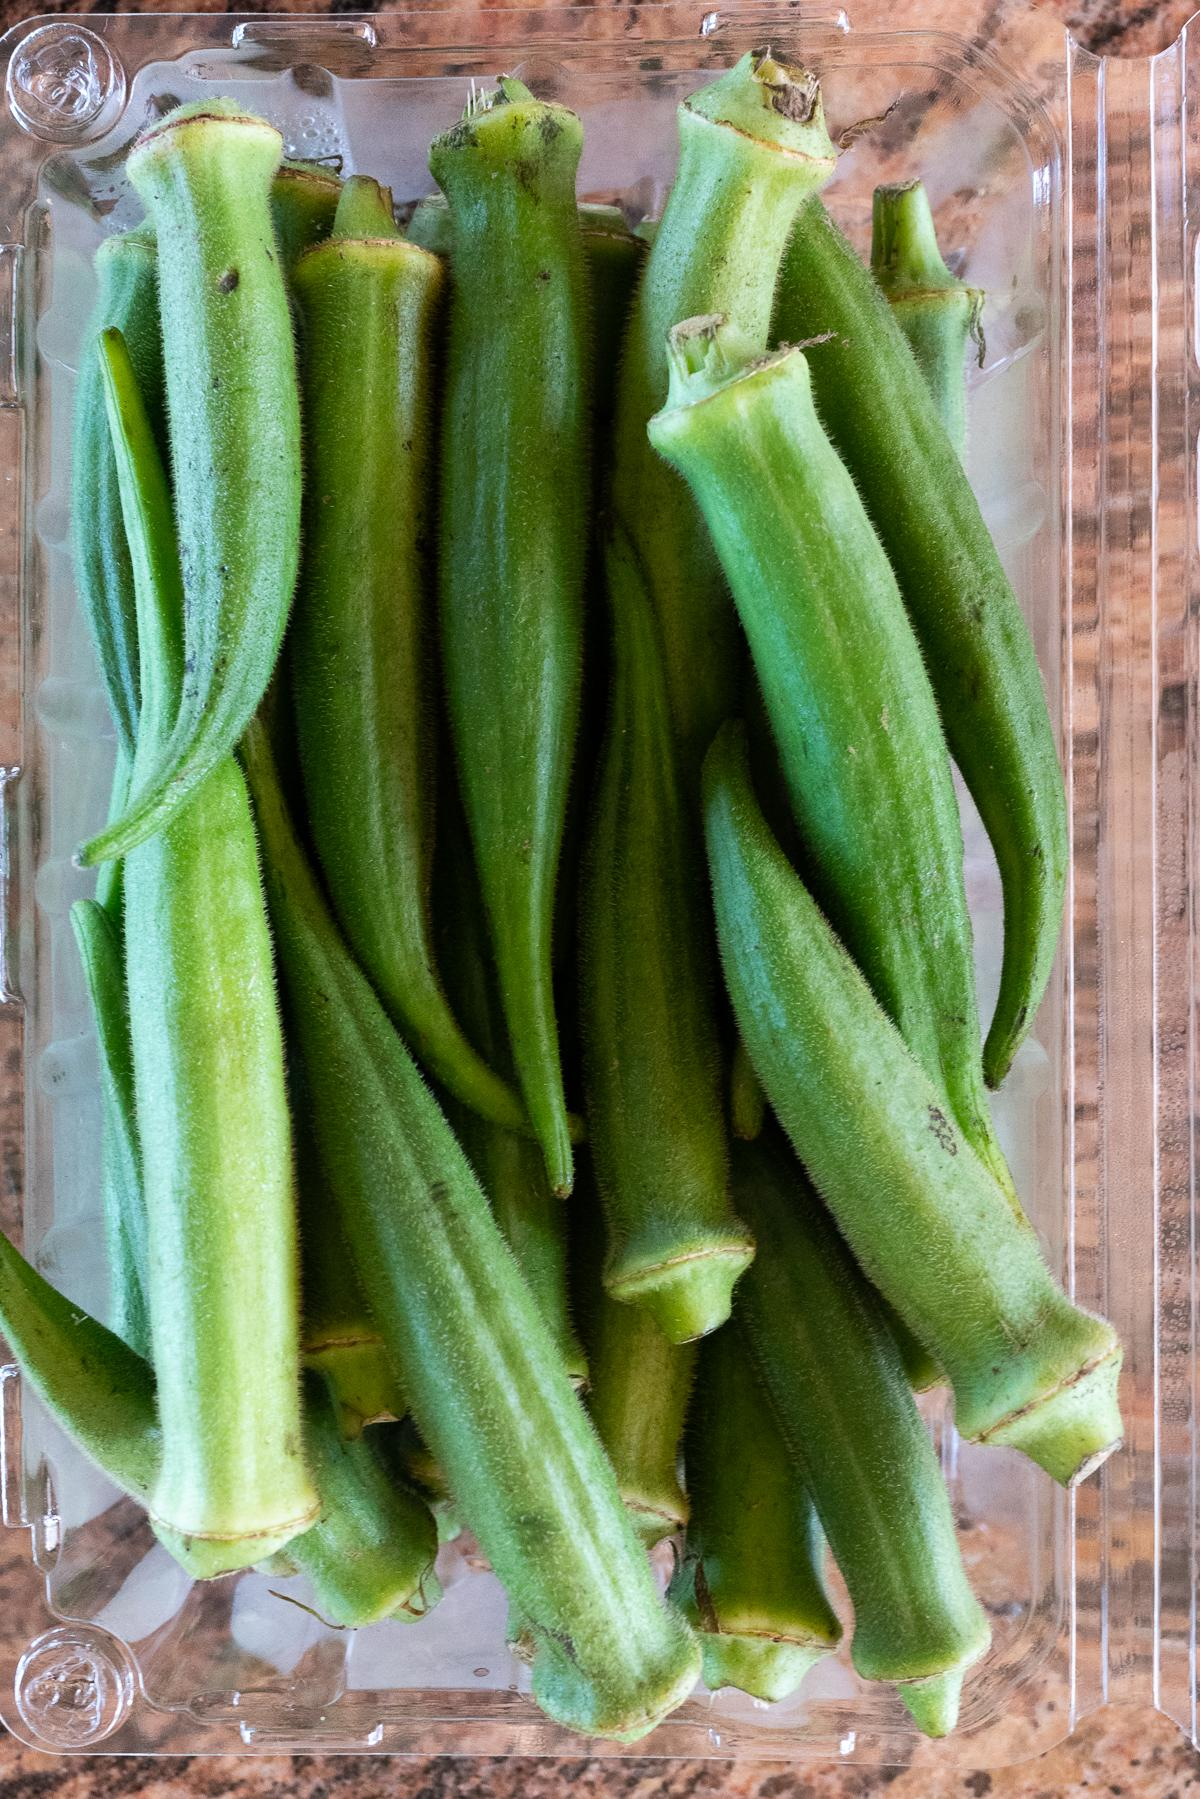 A container of fresh, raw, okra.